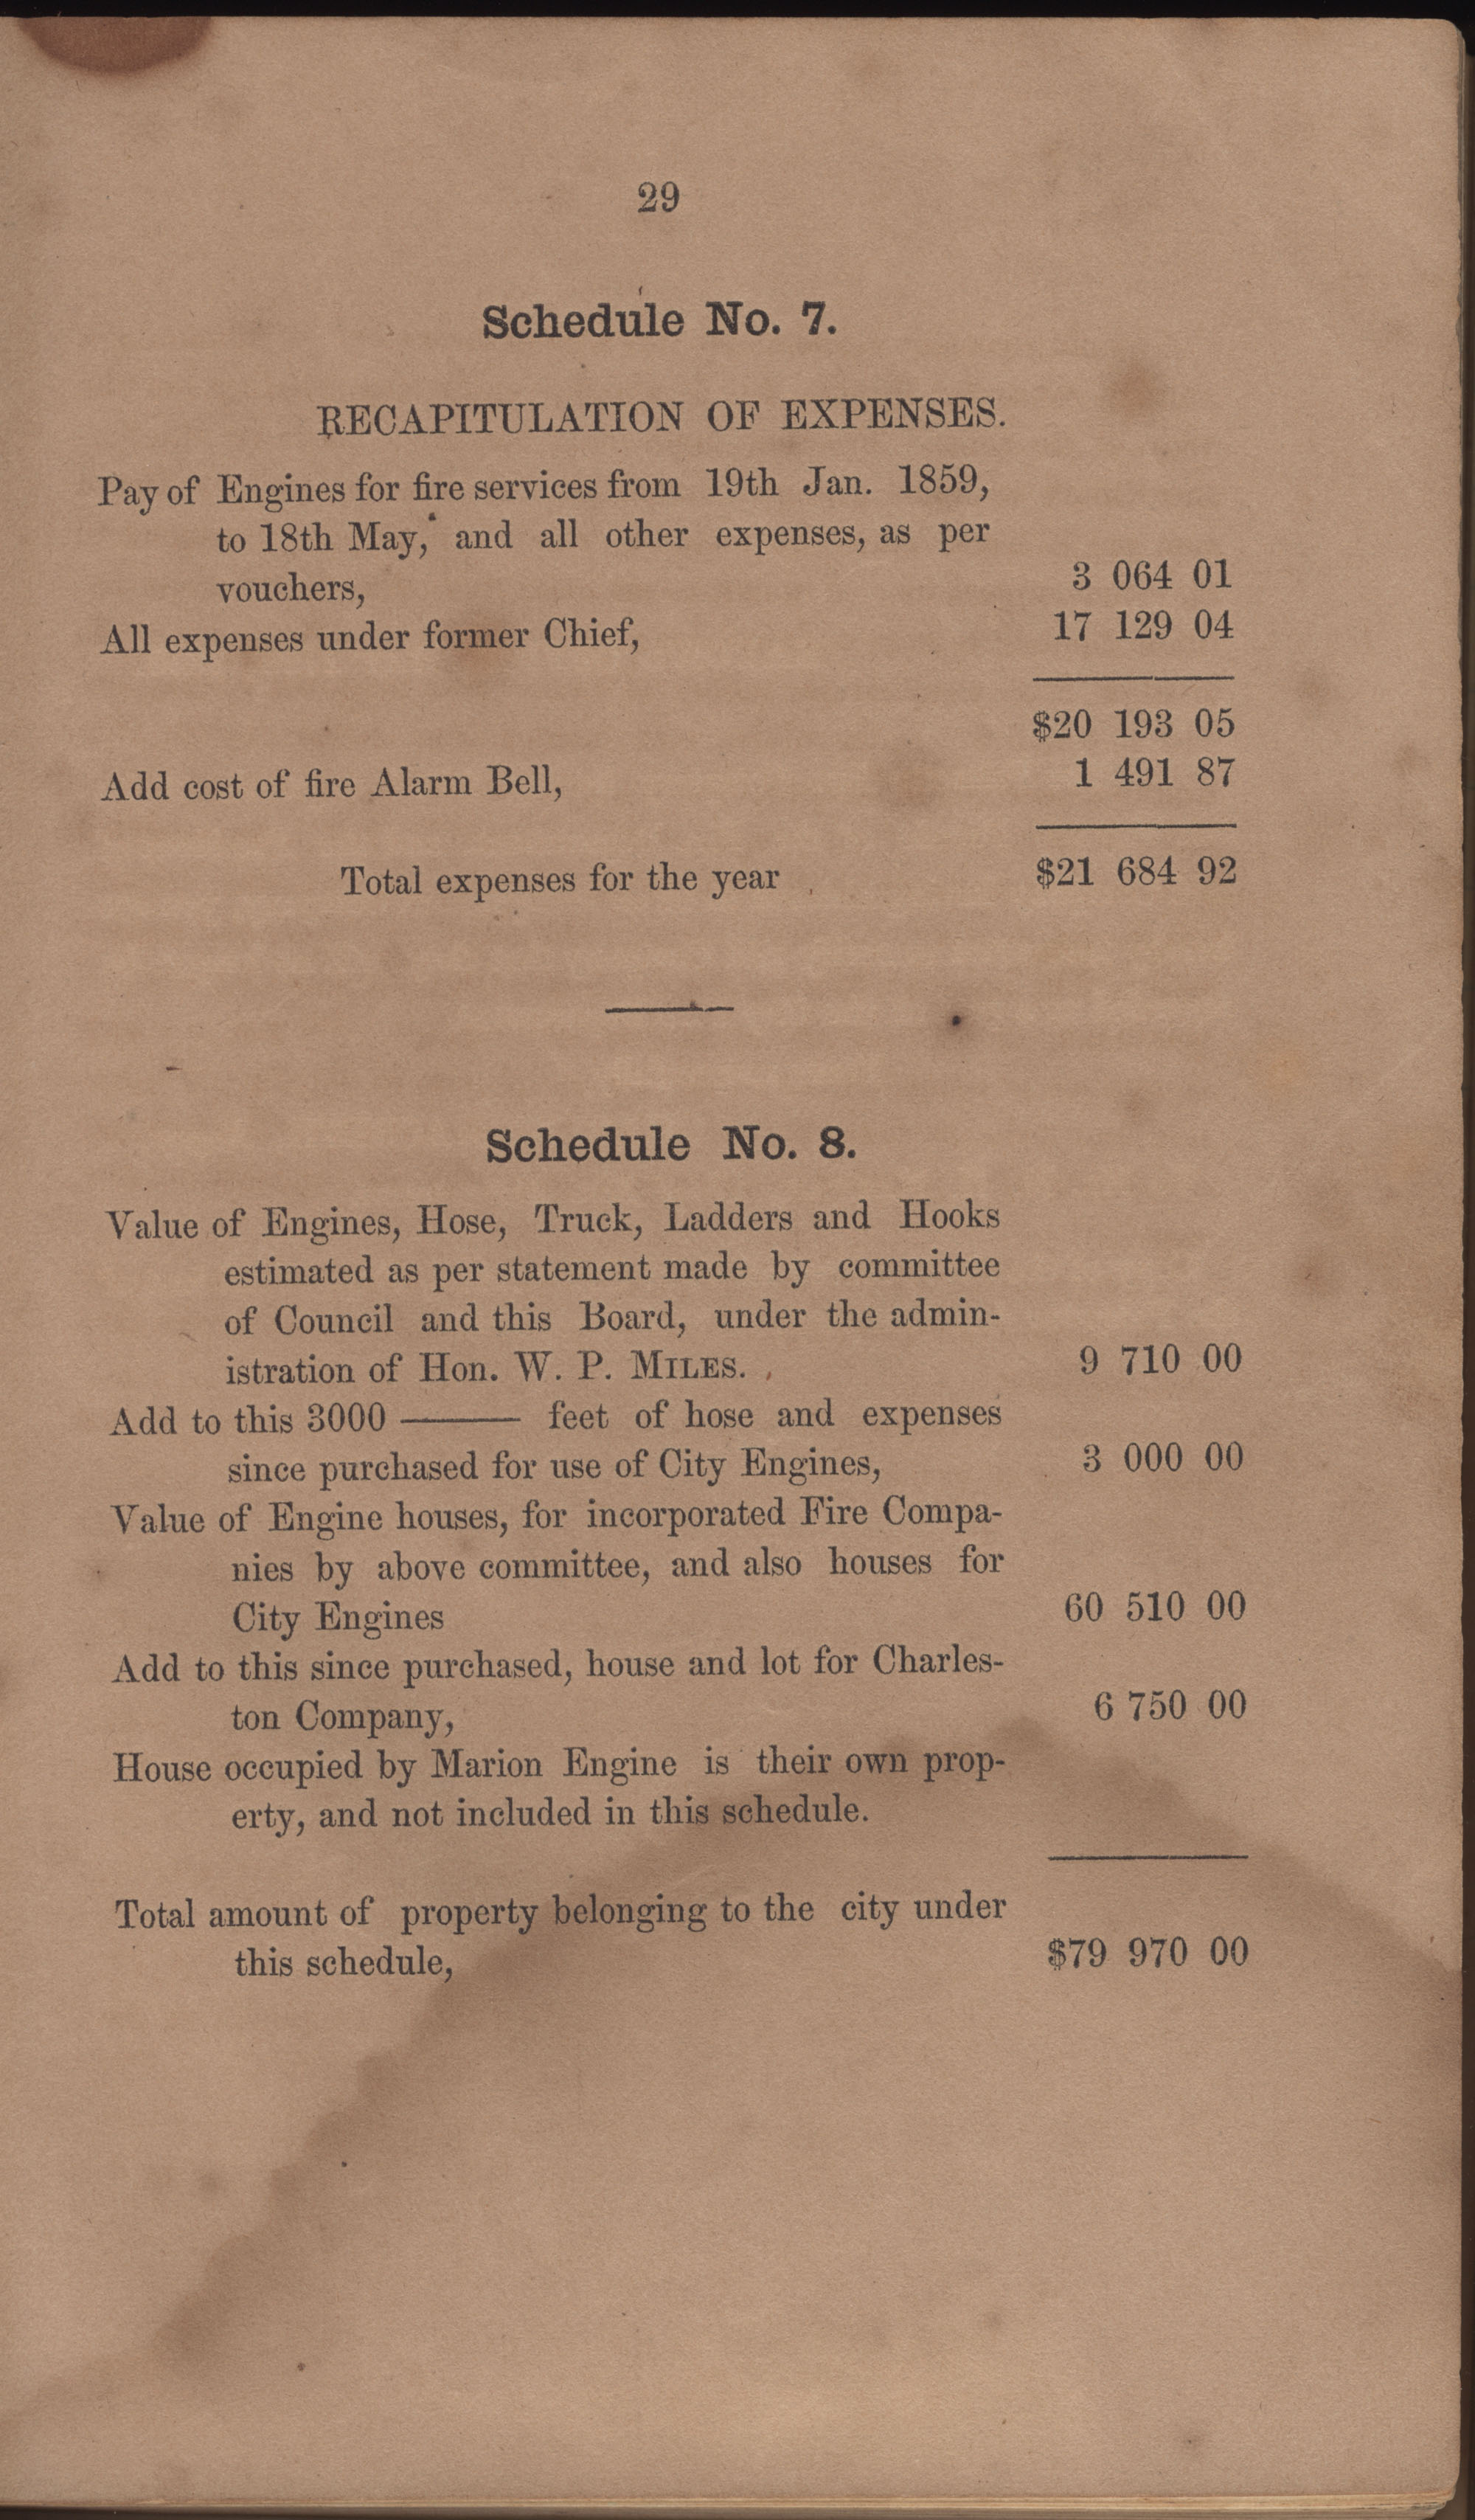 Annual Report of the Chief of the Fire Department of the City of Charleston, page 27